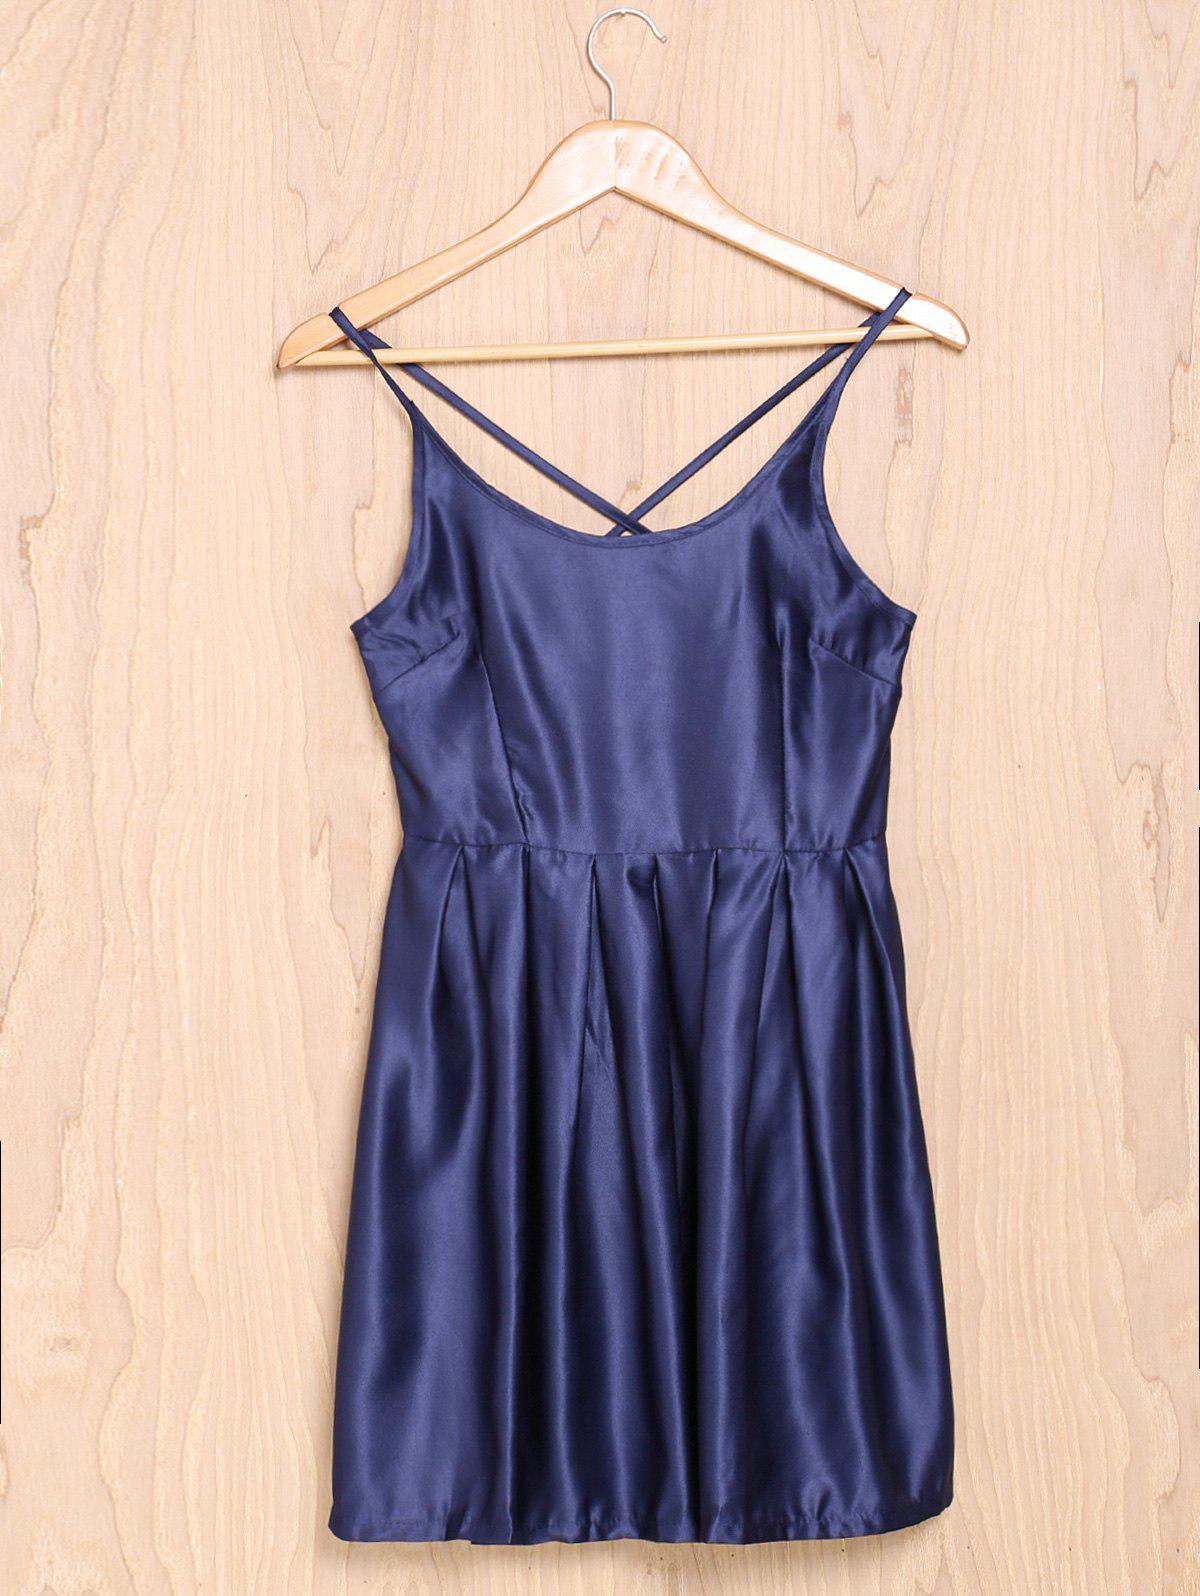 Sexy Spaghetti Strap Sans manches Solid Color Cross-Back Low-Cut Women's Robe - Bleu Violet S